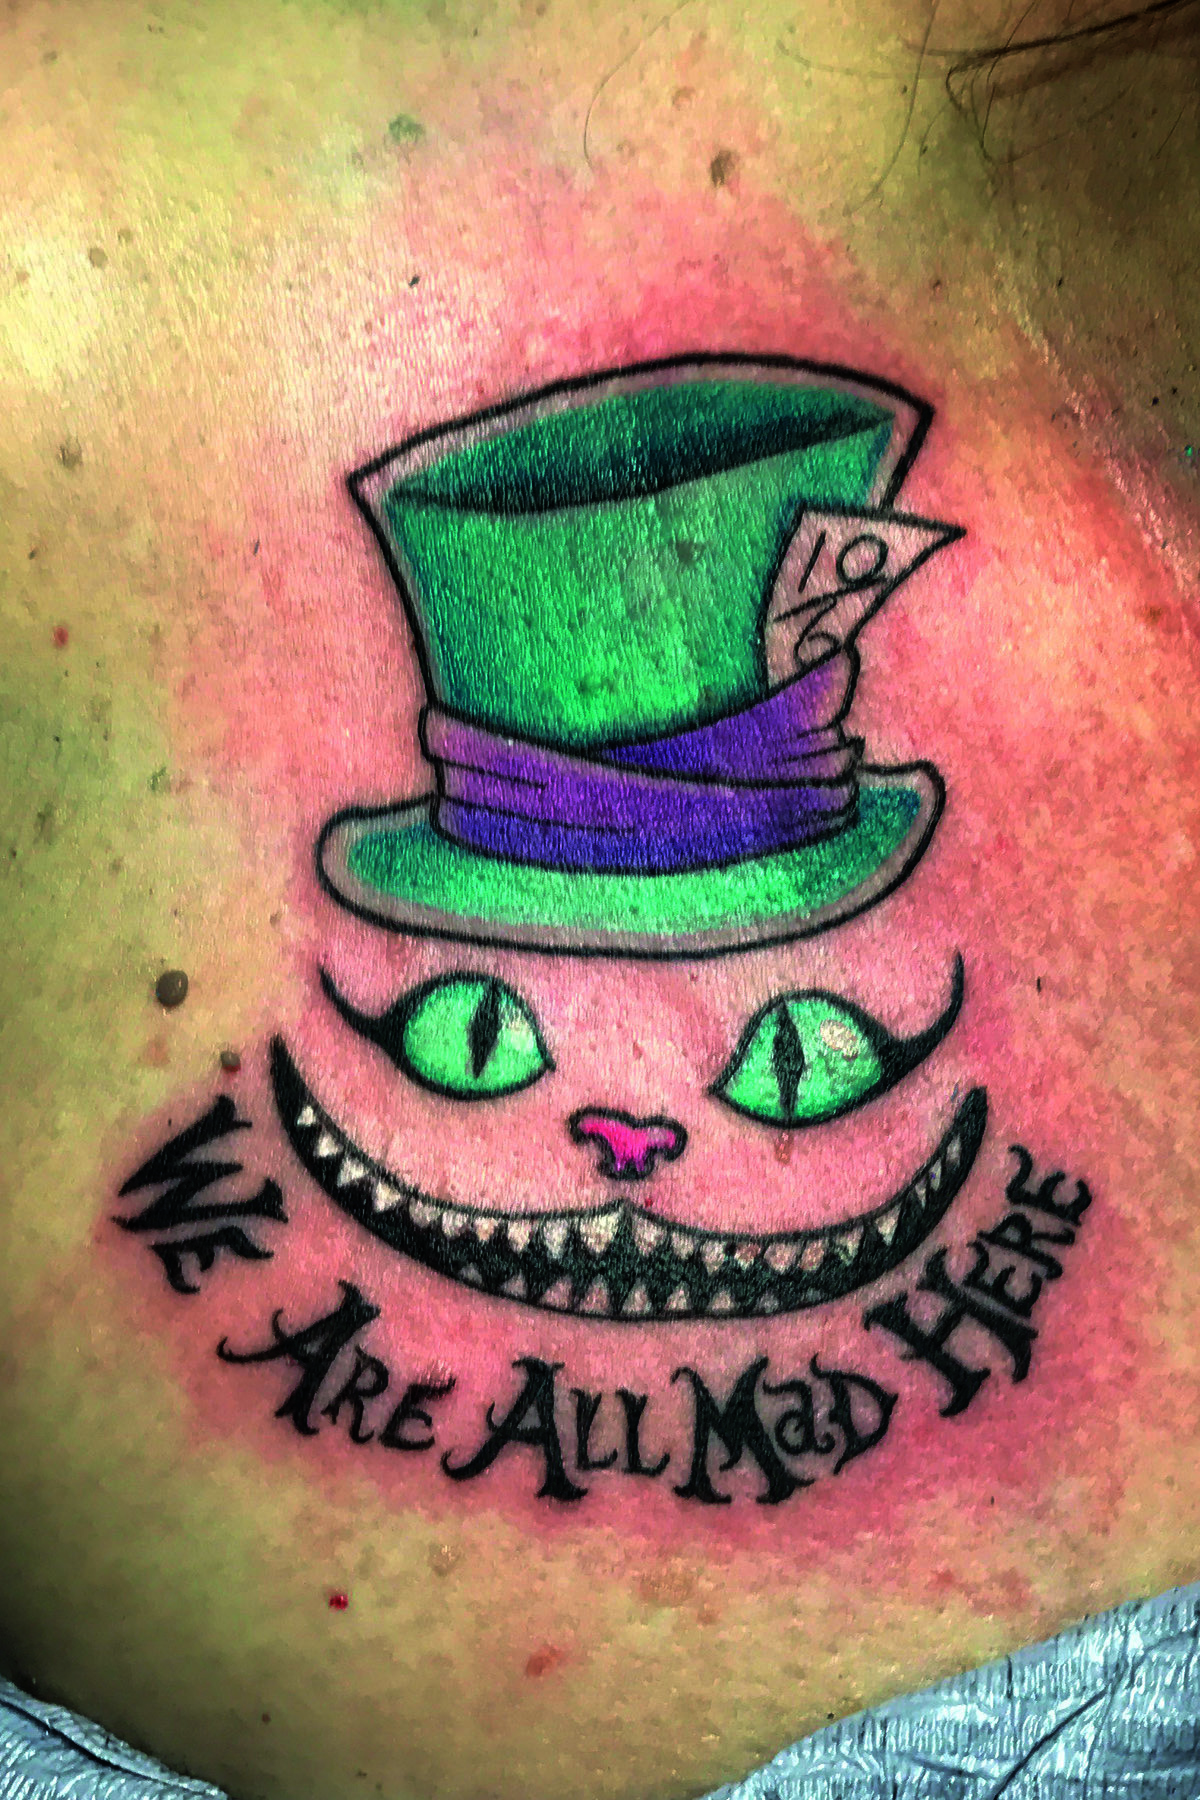 Cheshire cat smile and top hat, 'We are all mad here' in color. Below the collarbone tattoo.